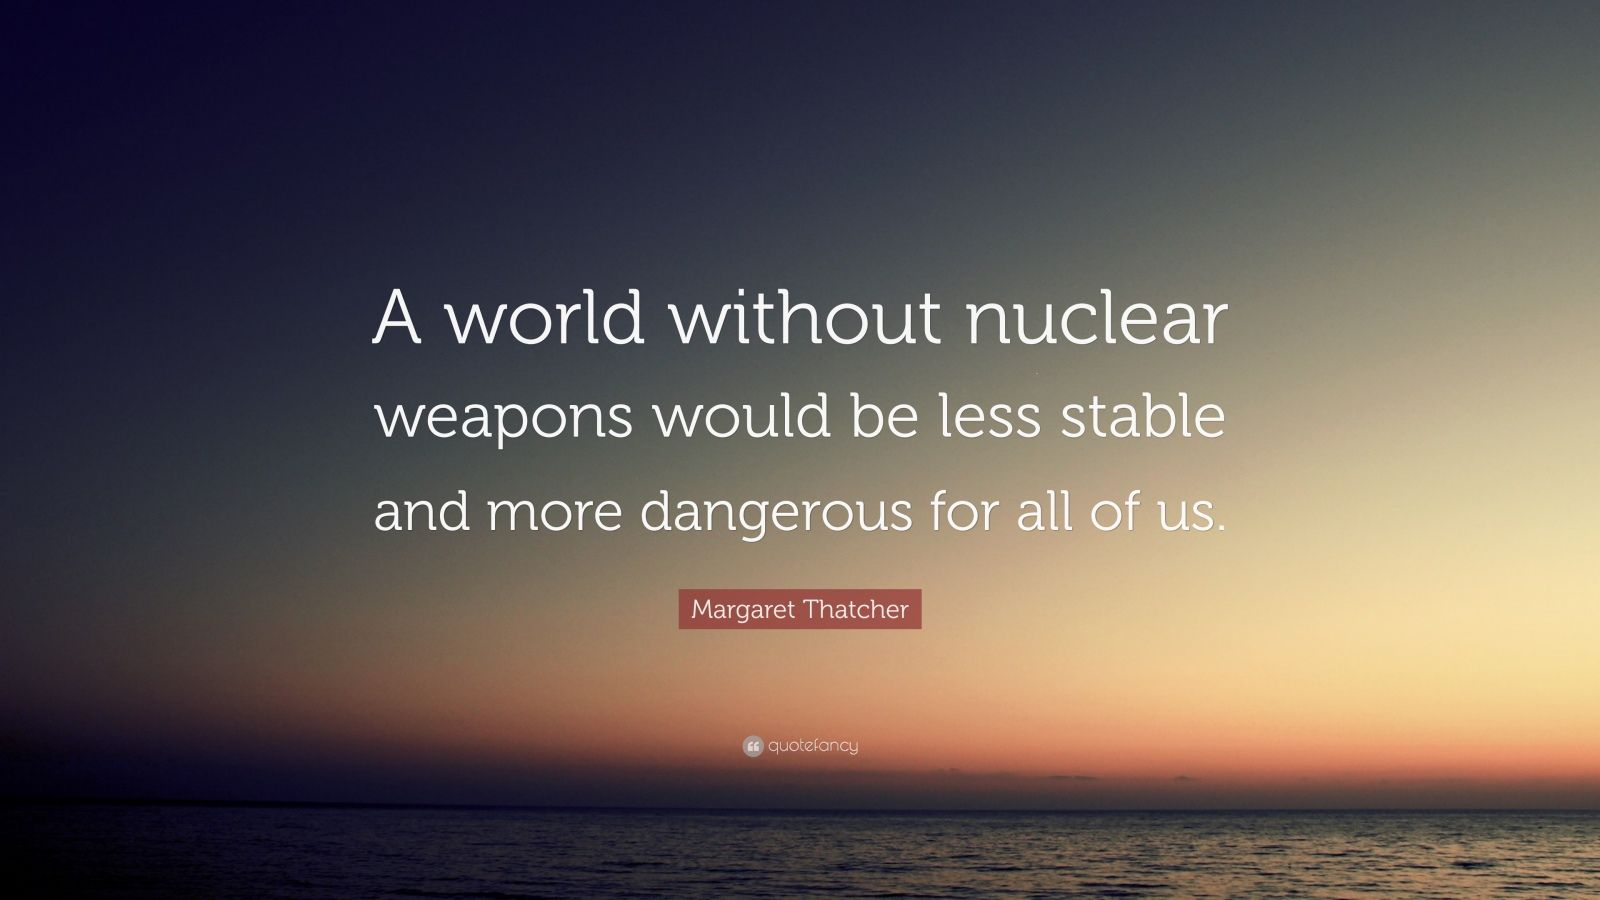 would a world without nuclear weapons It is the possibility of terrist groups and rogue states acquiring nuclear weapons that force the existing nuclear powers to retain overwhelming nuclear capabilities.